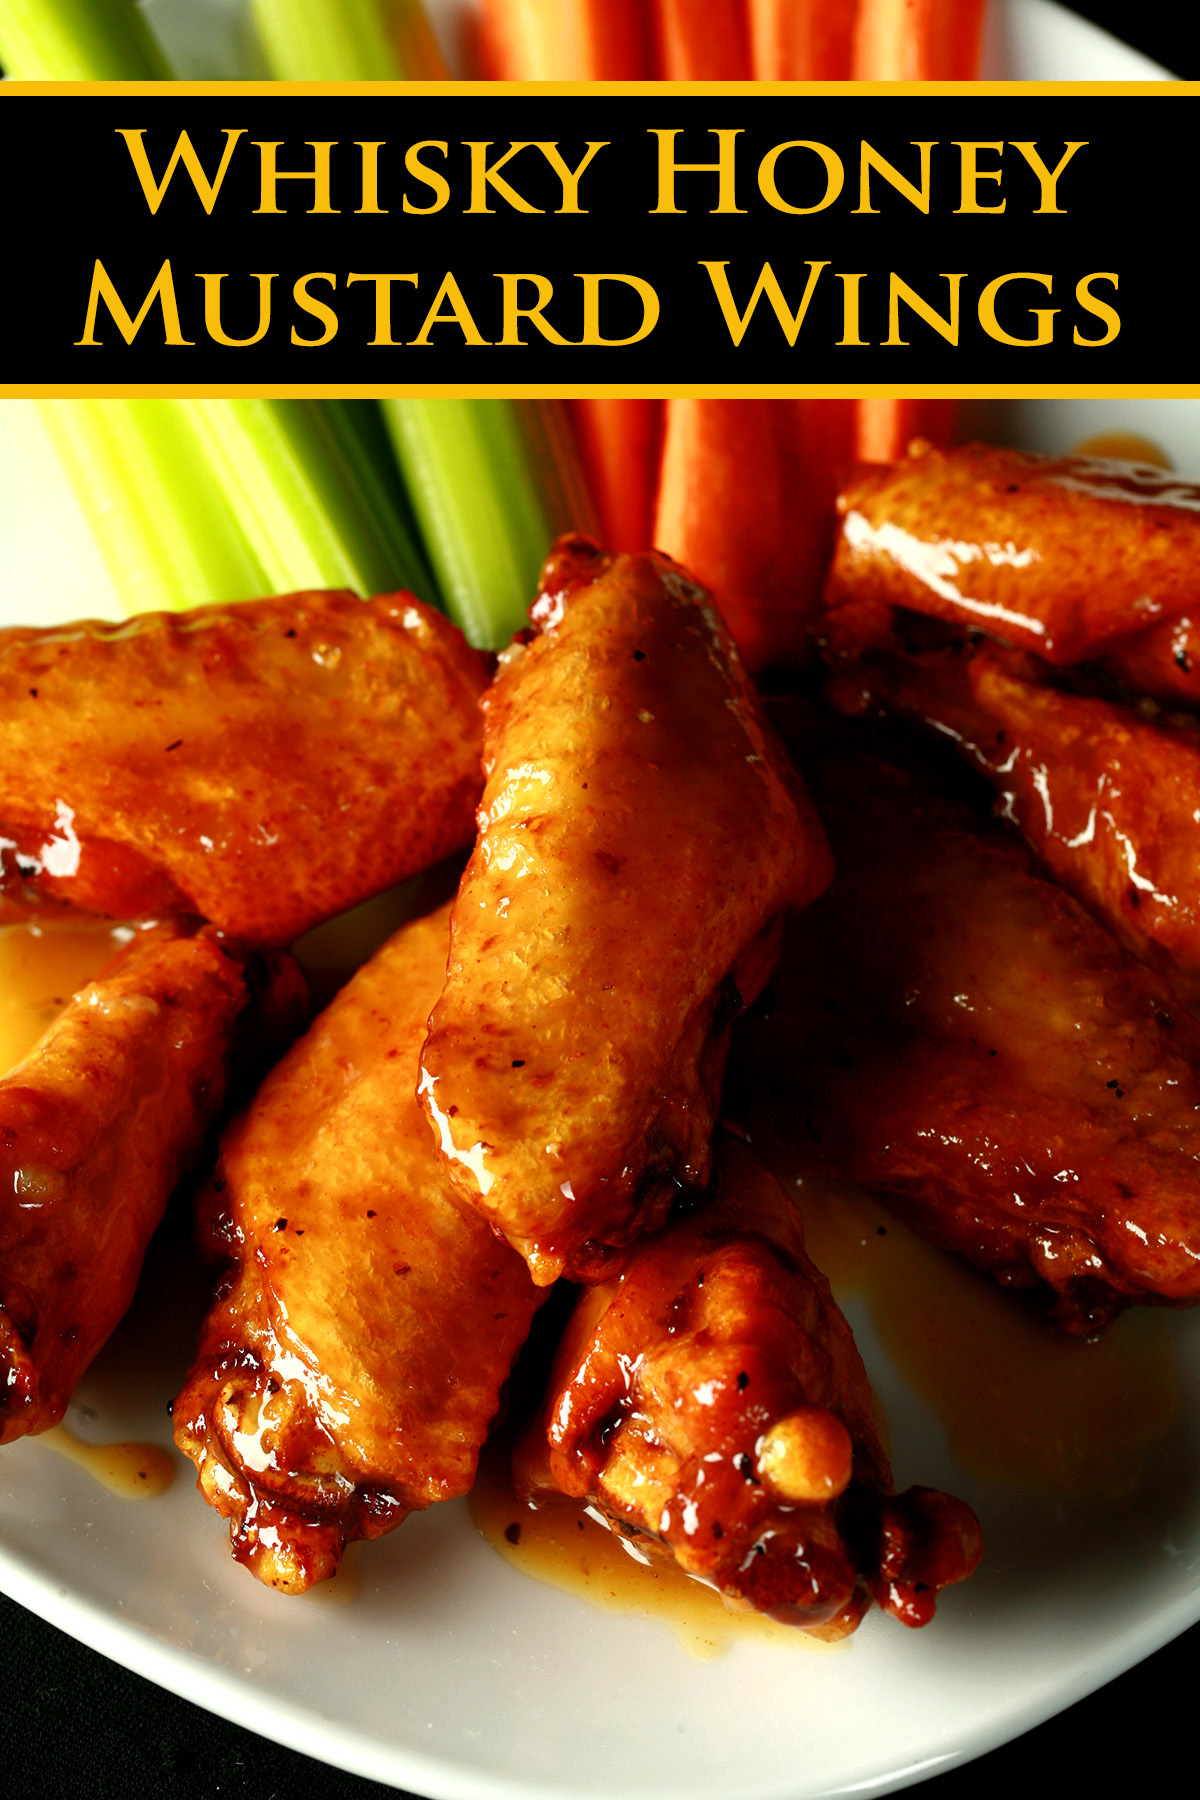 A small white plate with a pile of Whisky Honey Mustard Glazed Wings piled on it, celery and carrot sticks on the side.